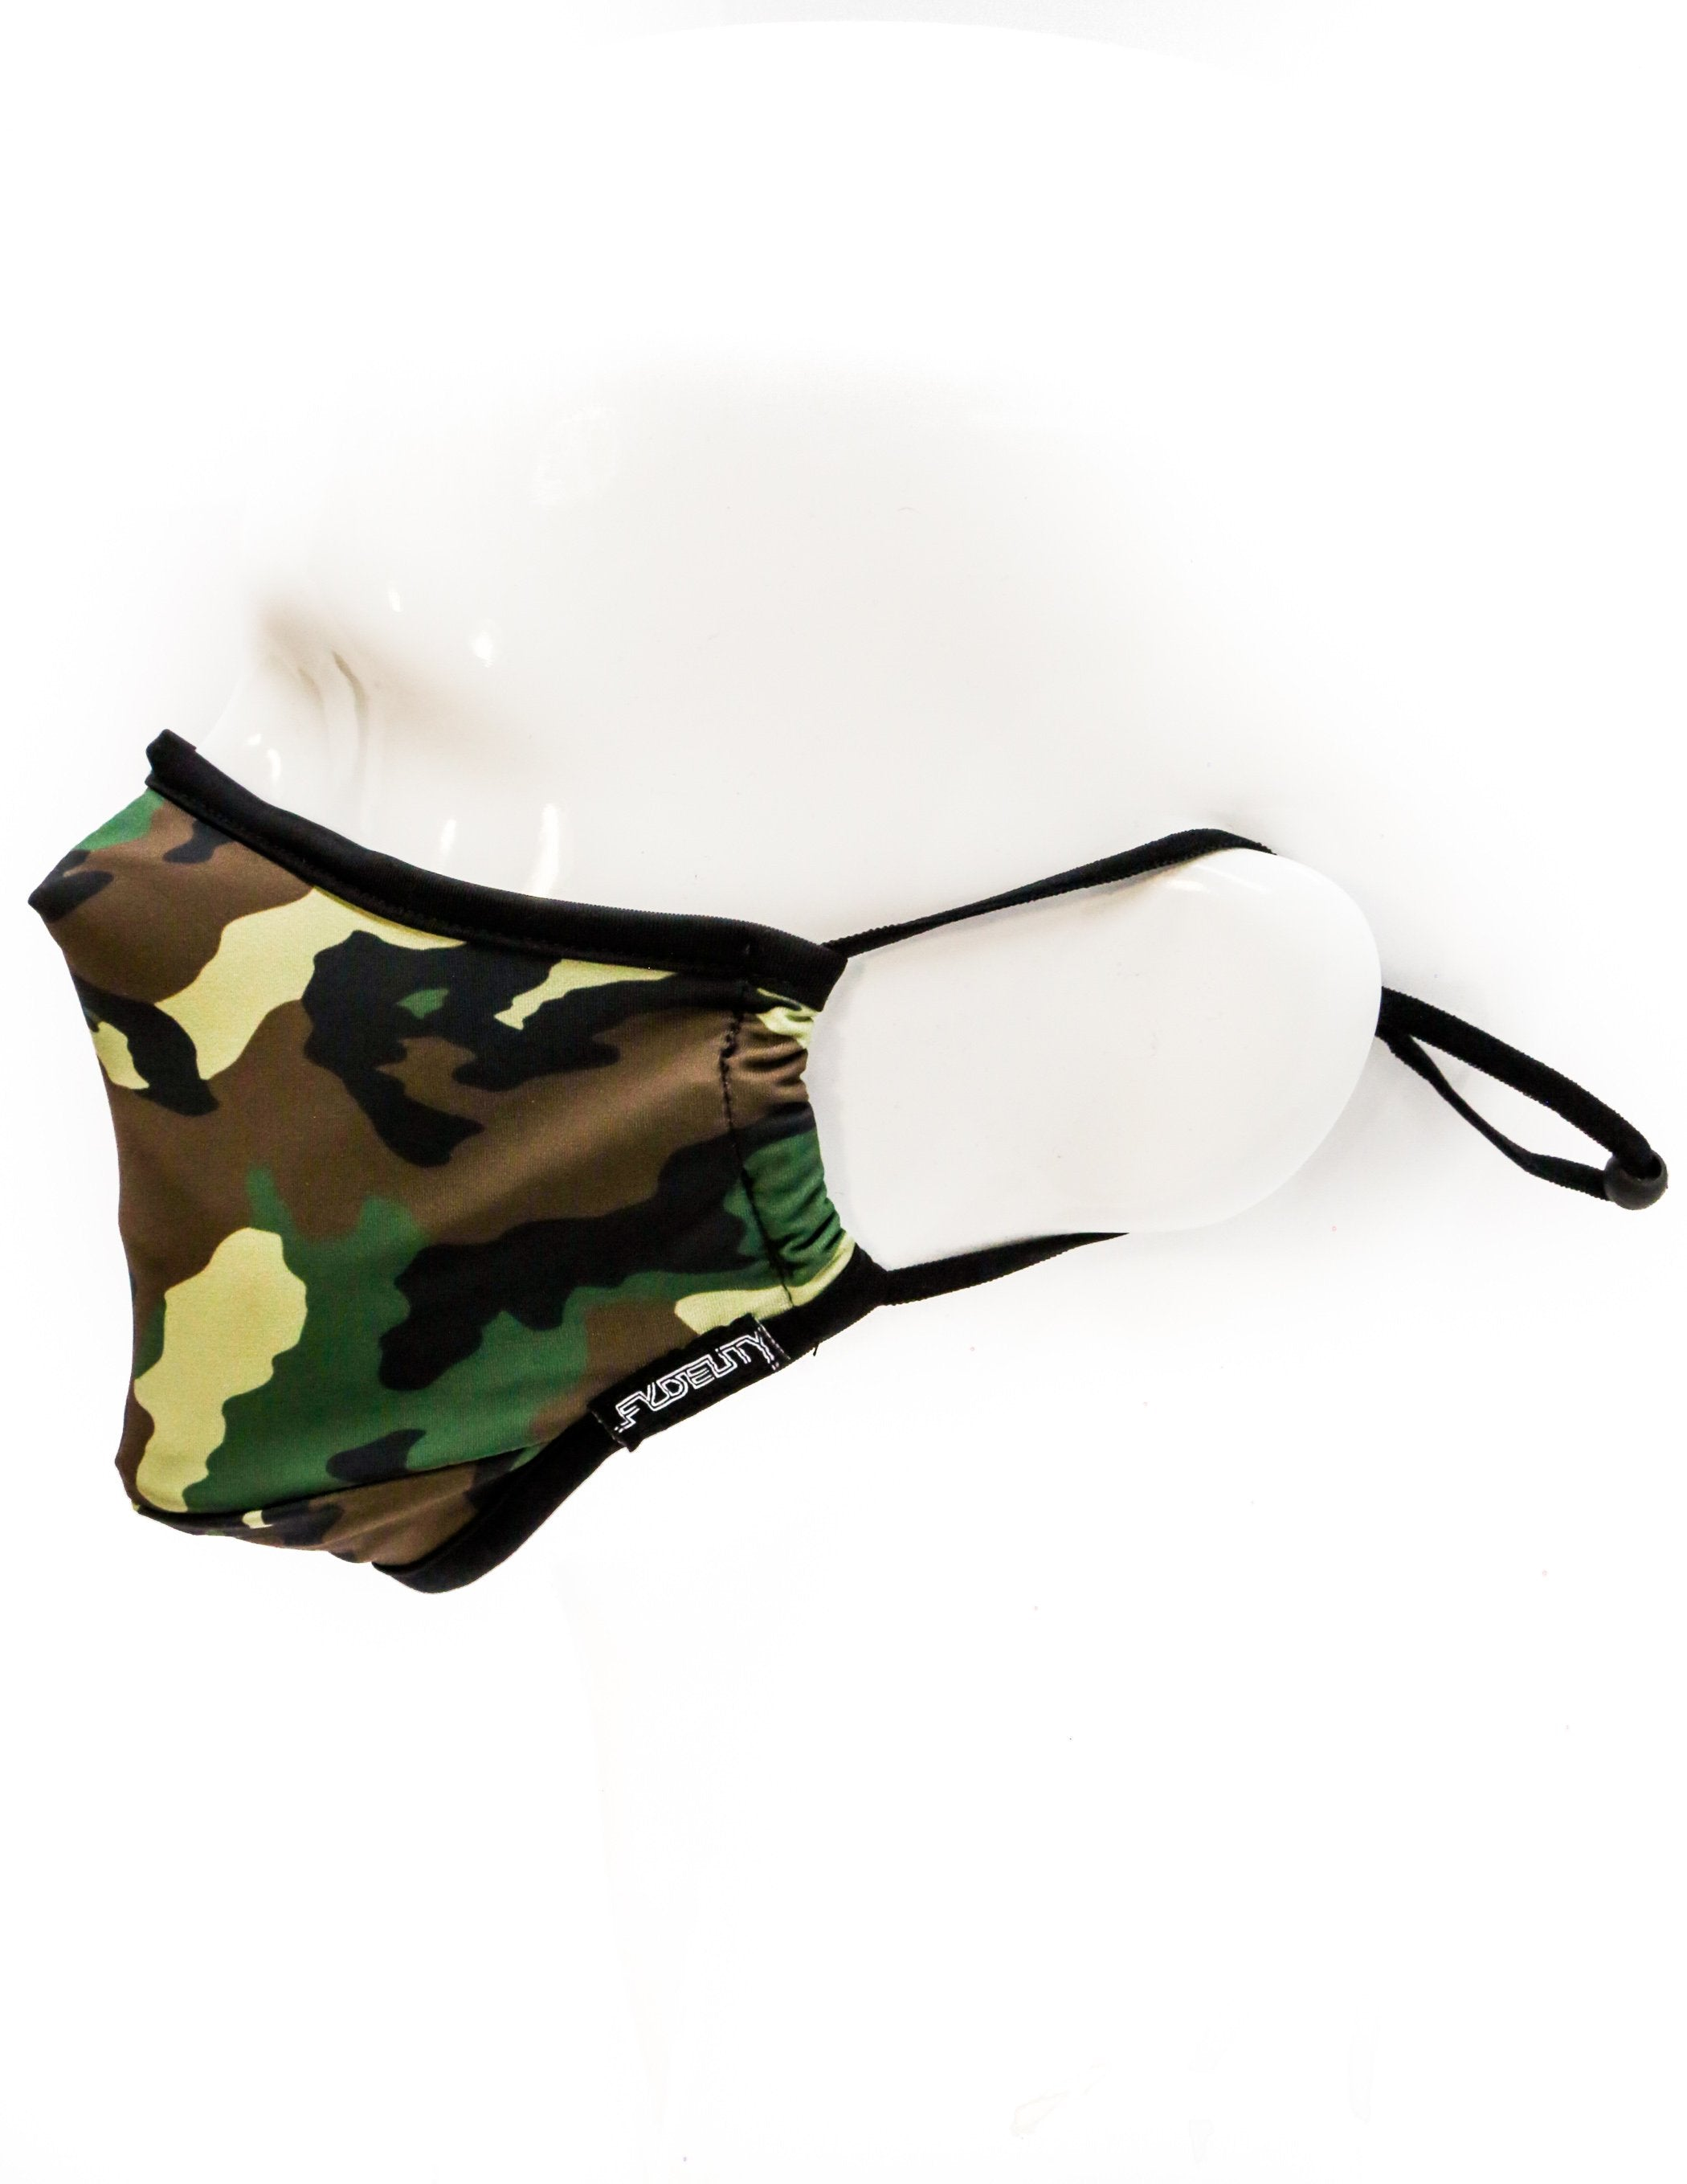 18087: FYDELITY- Premium Protective Fabric Face Covering Mask: Camo